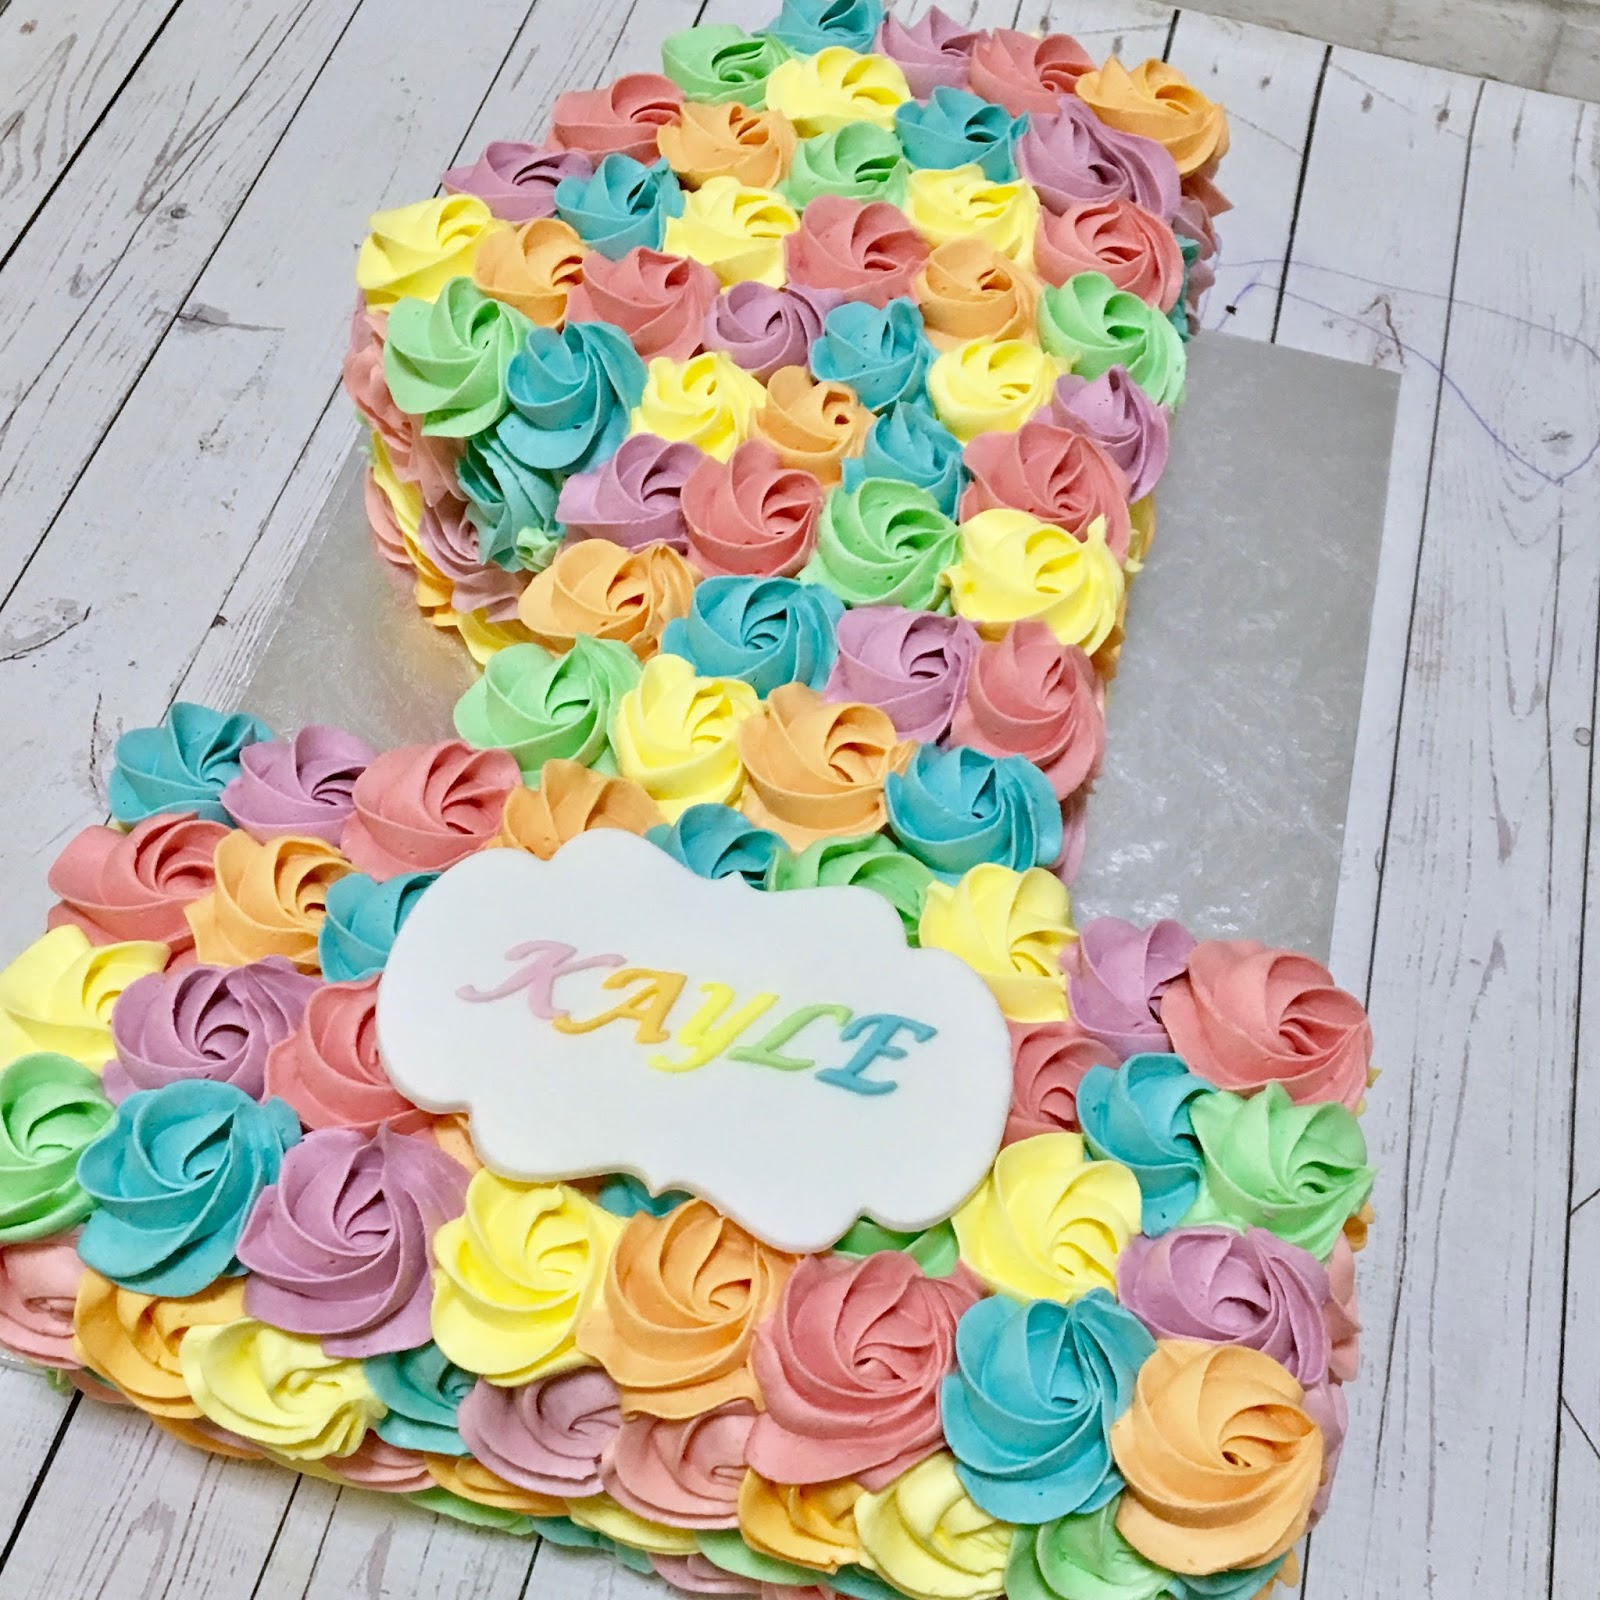 I Am So Happy That This Cake Brought Smiles Joy And Memories To Everyone Celebrating Kayles Birthday It Was Indeed A Rainbow Baby